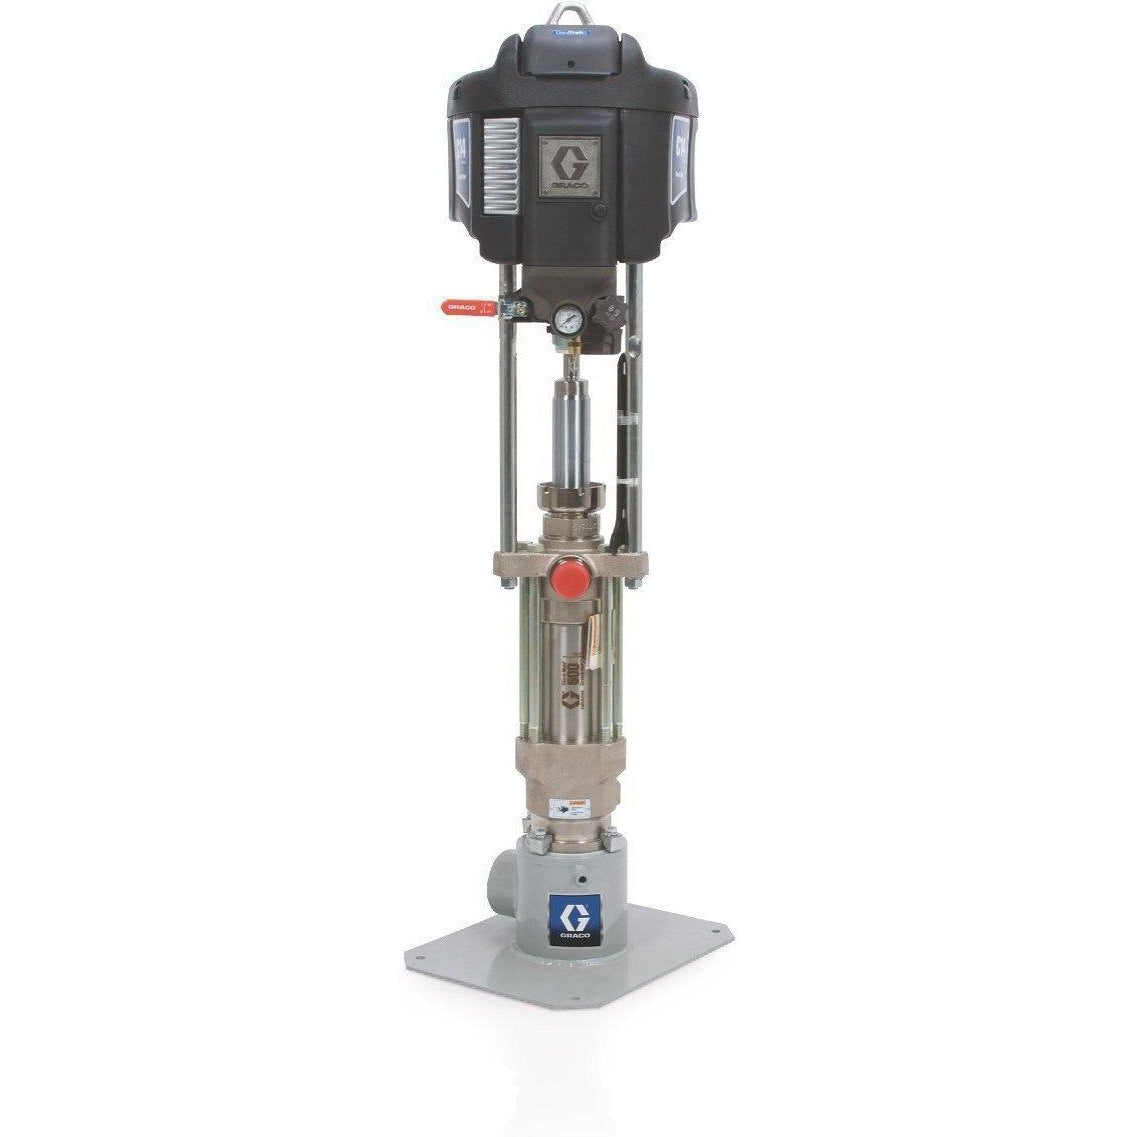 P55Dcs-Graco P55Dcs Nxt™ Check-Mateâ® Air-Powered 55:1 Grease Pump Without Datatrak-Order-Online-Fireball-Equipment